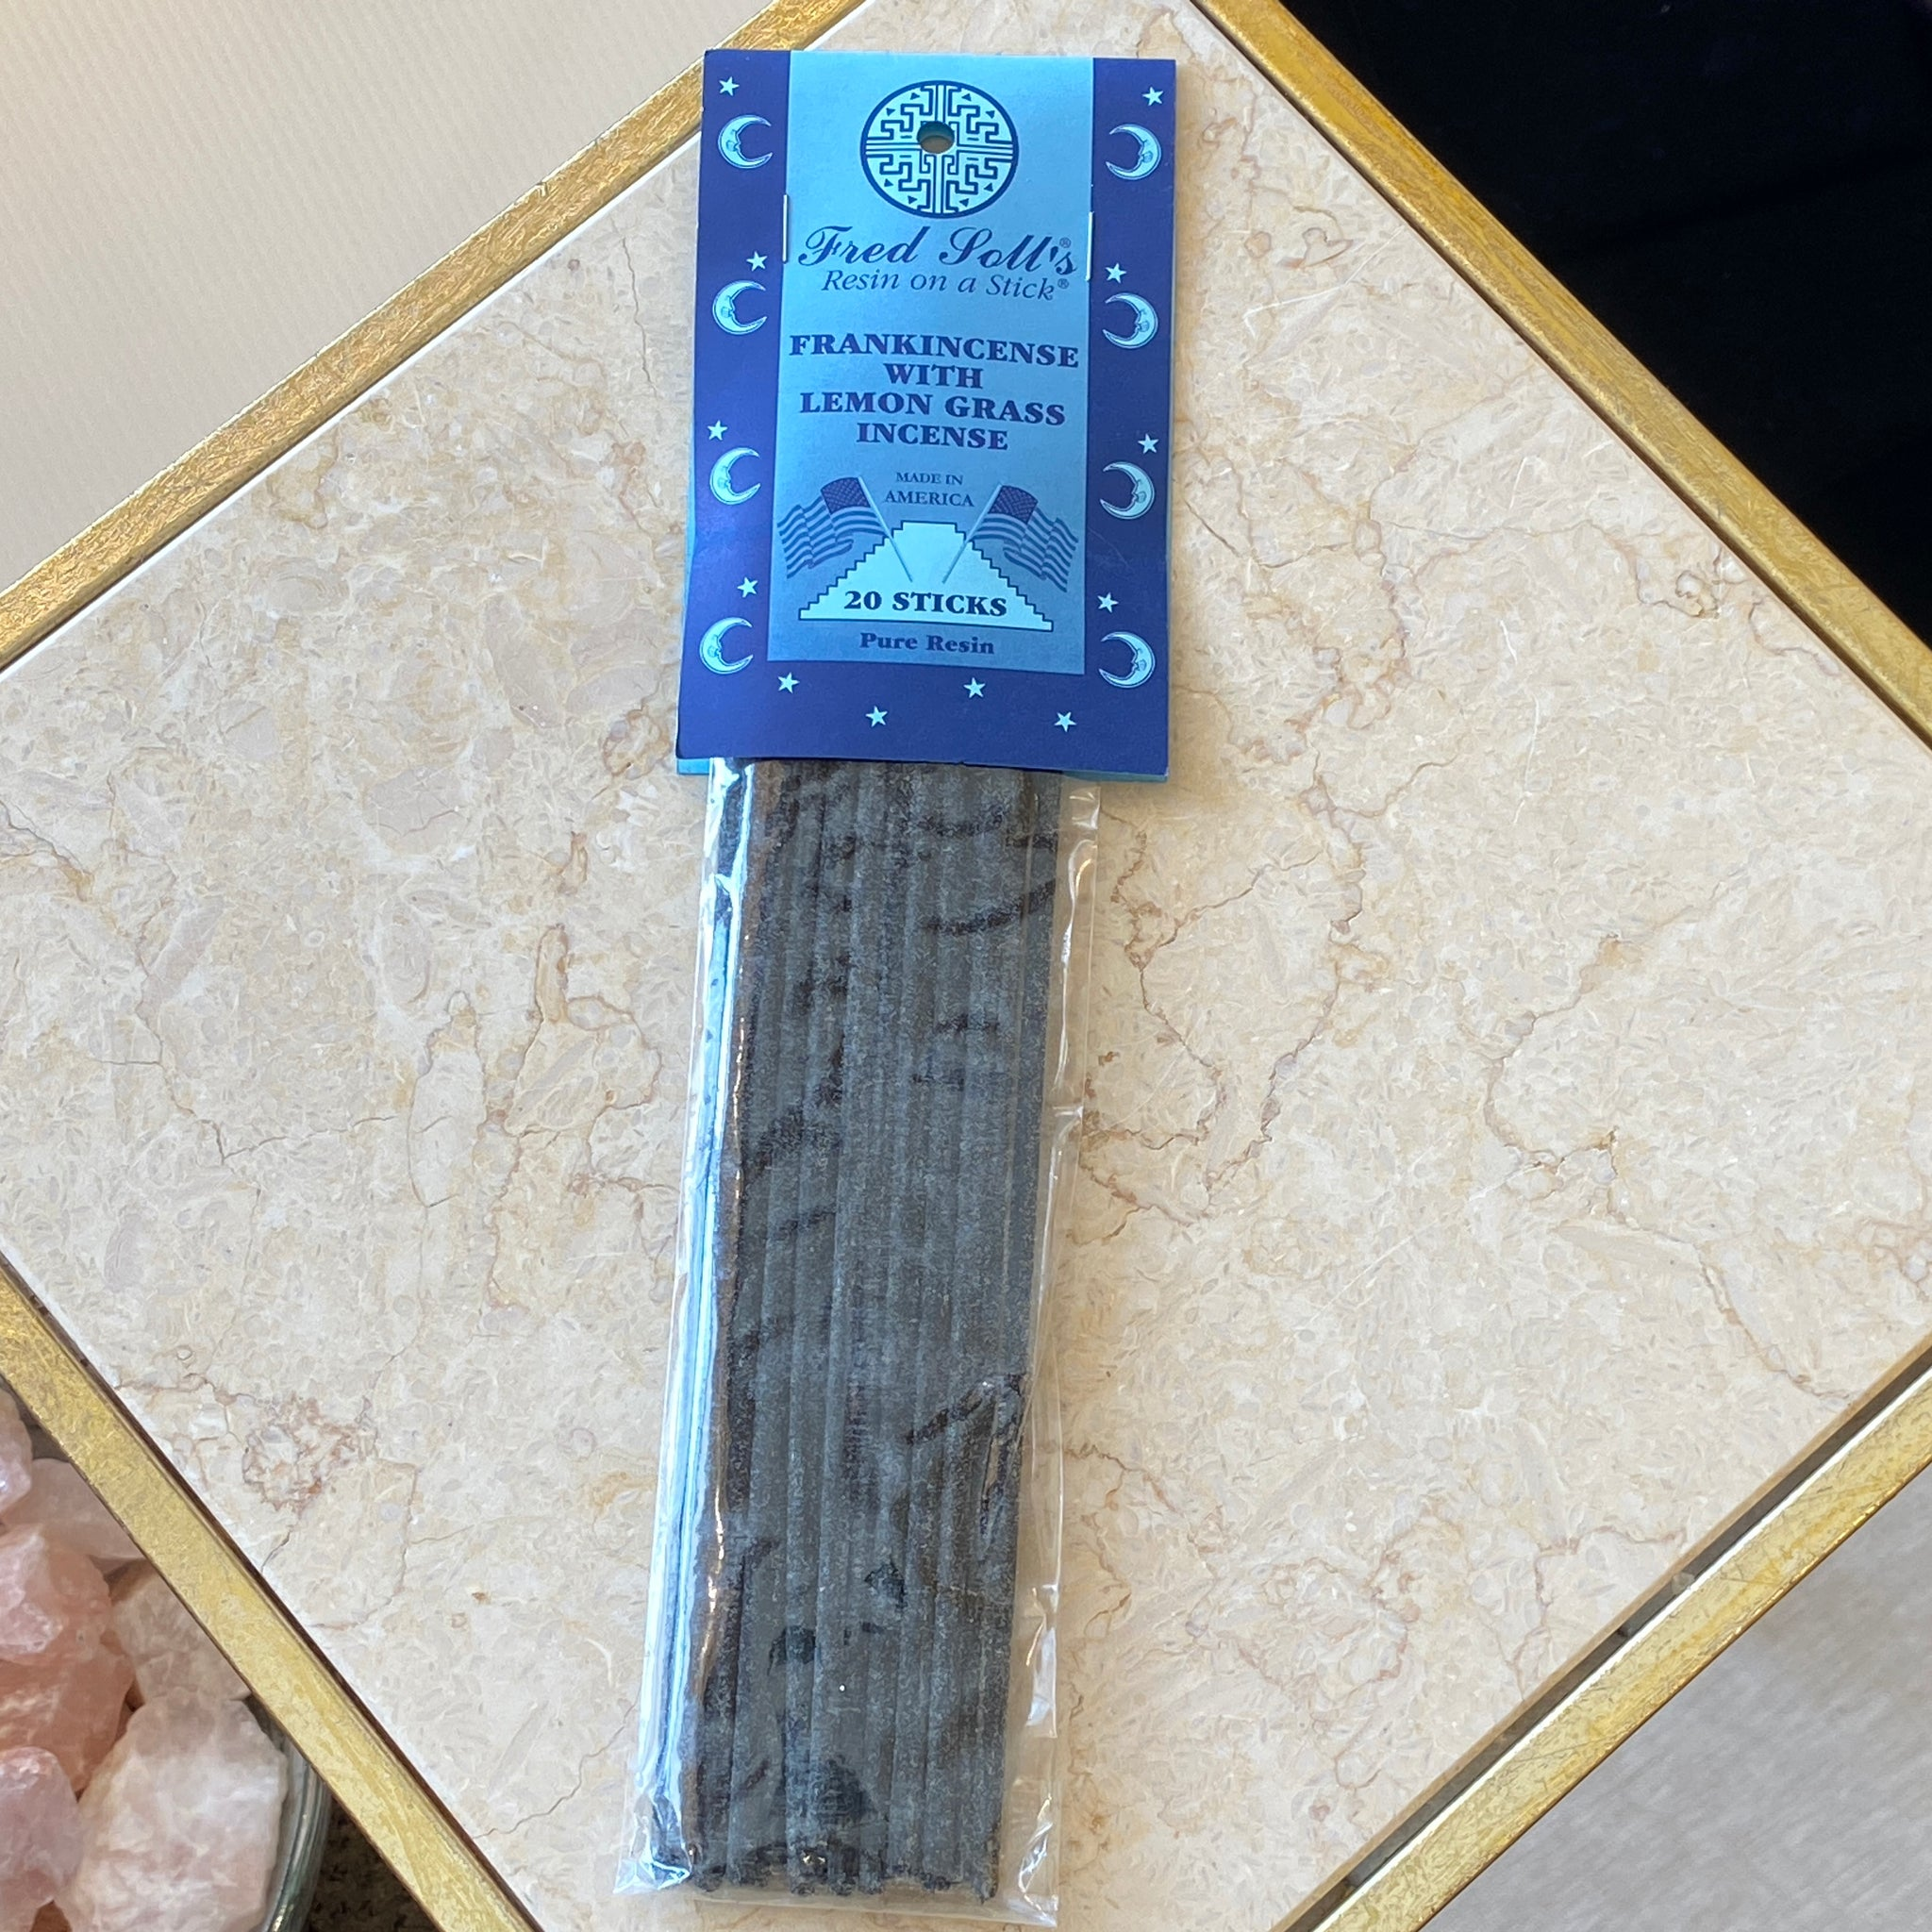 Frakincense w/ Lemon Grass Incense (20 Sticks)